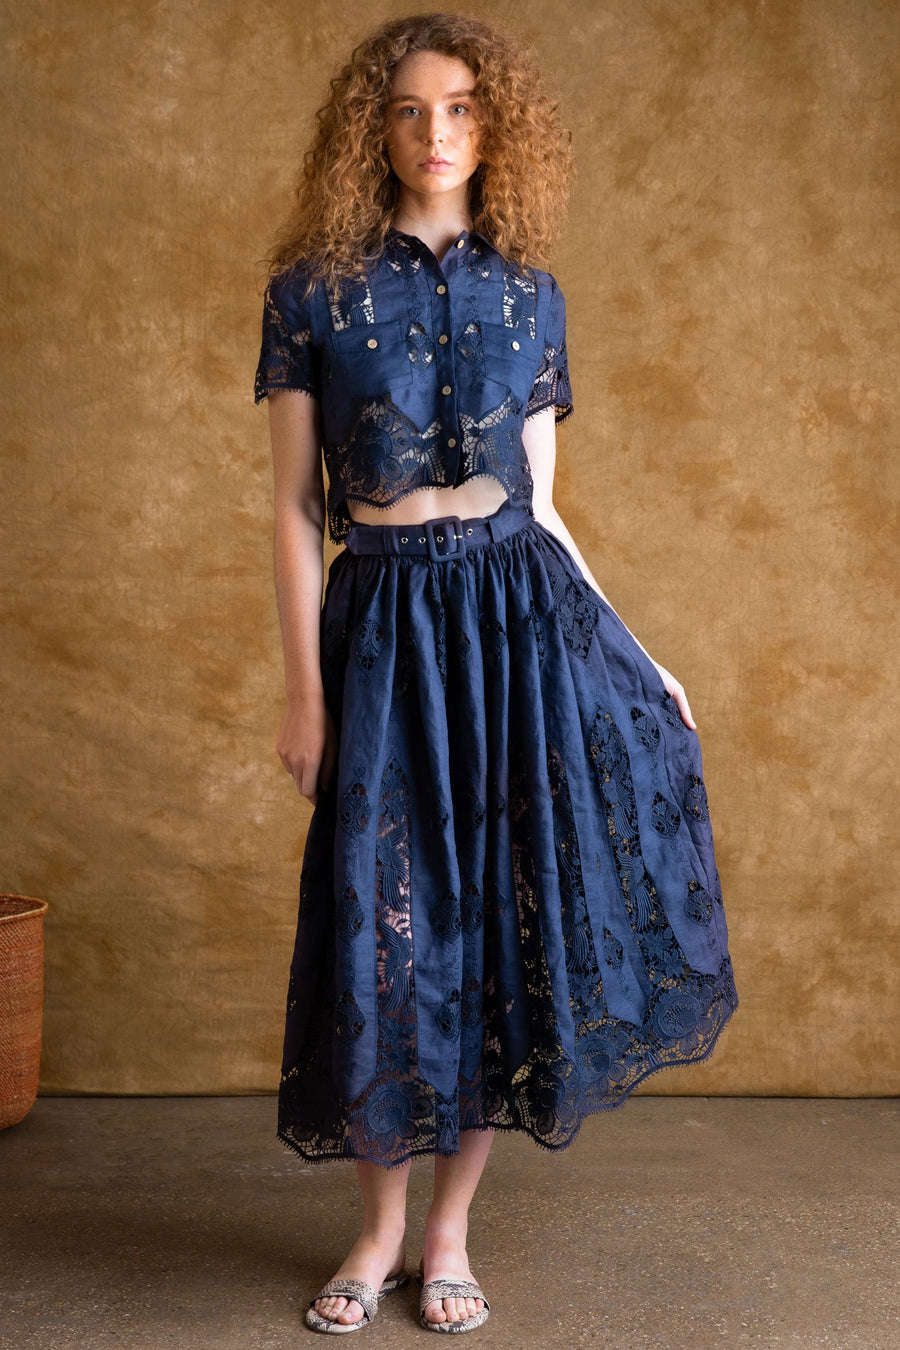 This is a photo of a woman wearing a 2 piece navy blue linen and lace set. The crop top has 2 front square pockets and buttons up the front for closure. The mid length skirt has a removable belt, side pockets, and a scalloped hemline at the bottom.